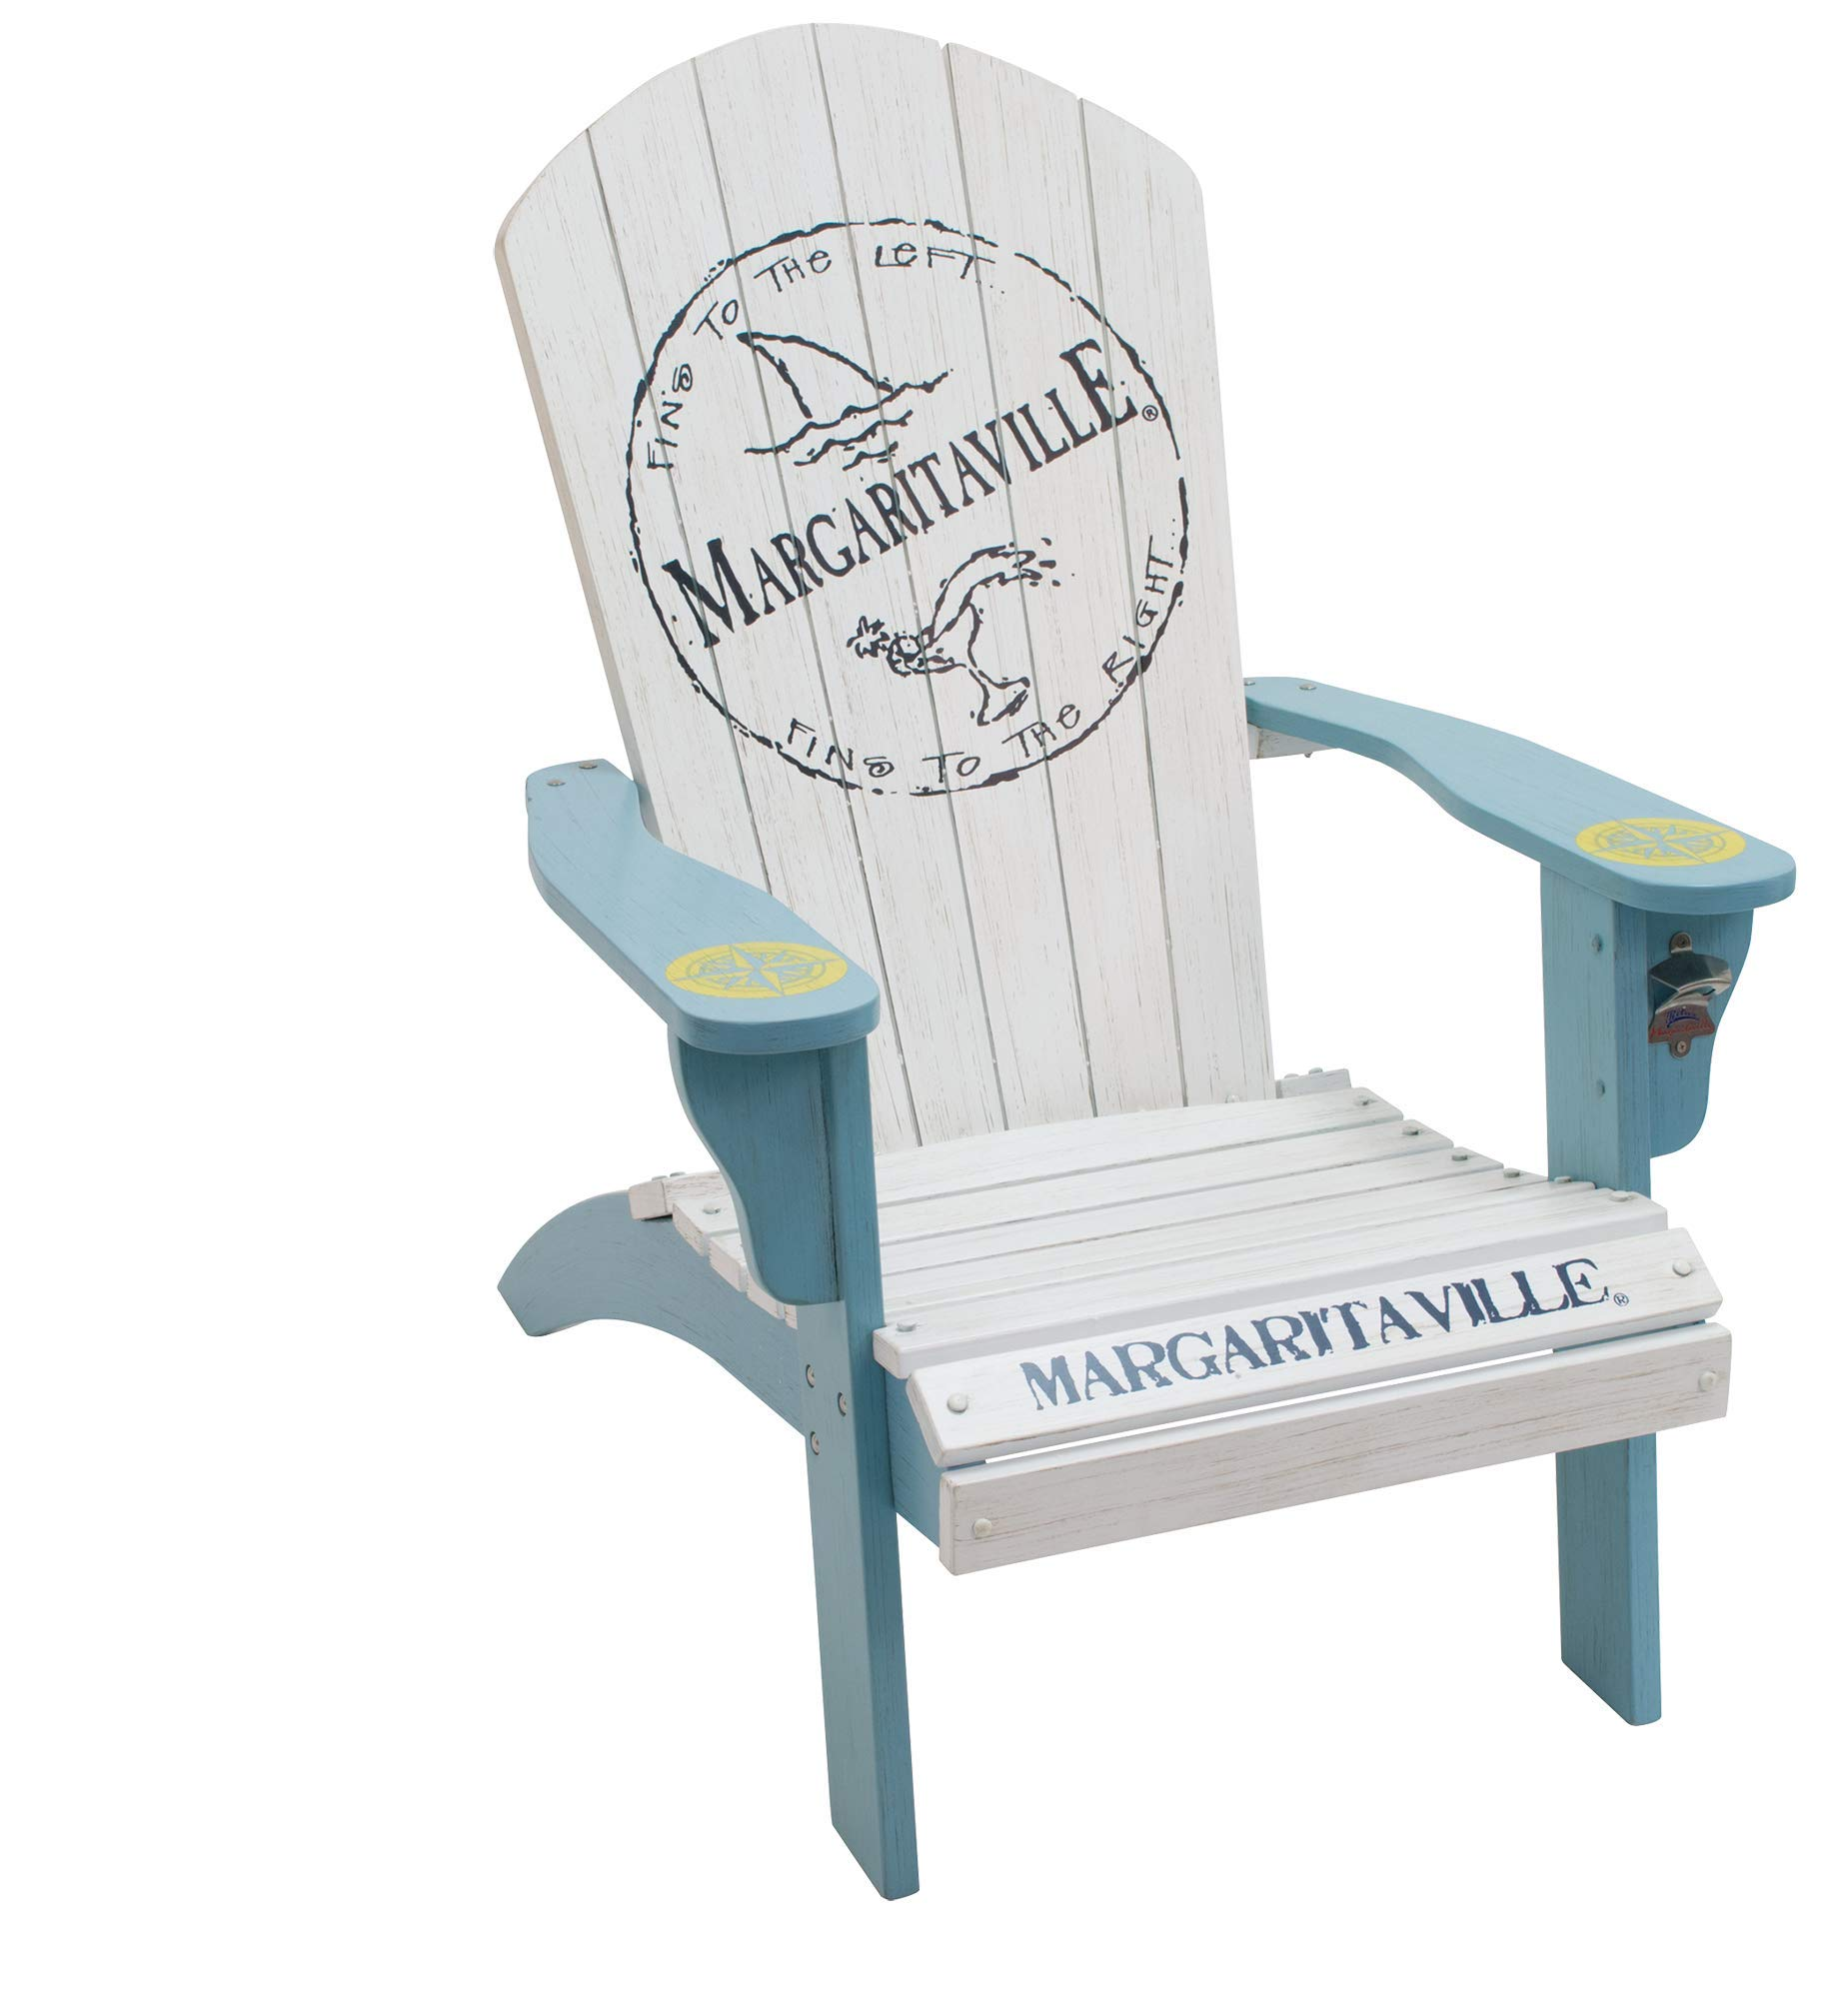 Margaritaville Outdoor Wood Adirondack Outdoor Deep Seat Chair, Fins to The Left